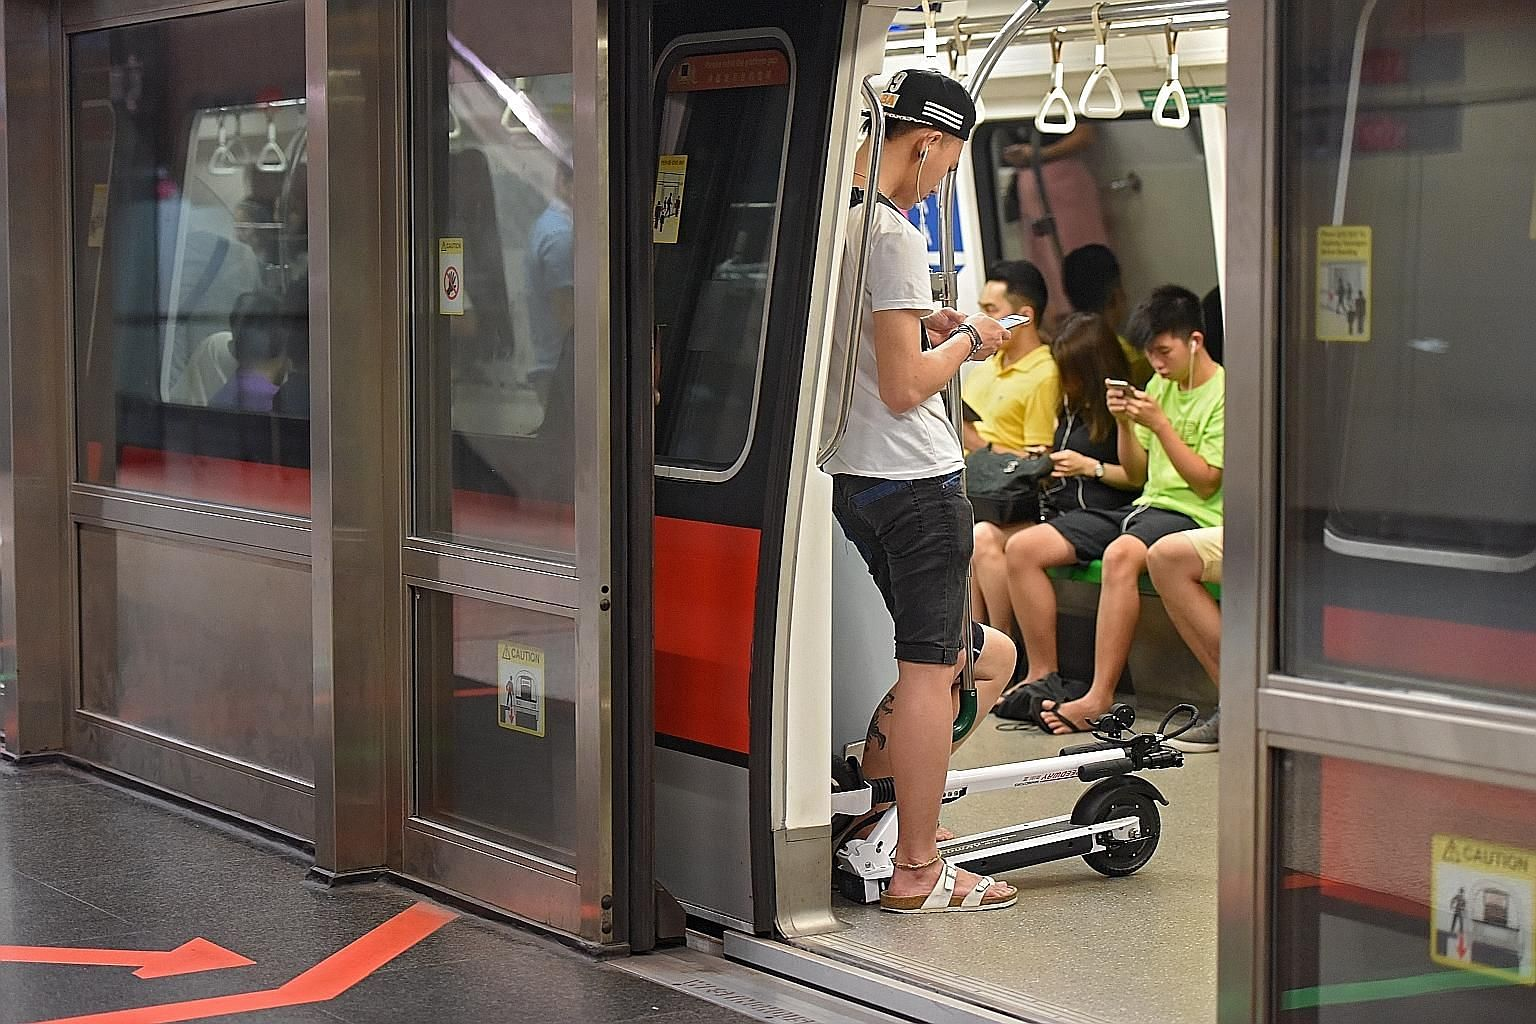 Despite a dismal decade marked by major incidents and accidents, there are signs that things are finally taking a turn for the better. In March, Singapore's dominant rail operator SMRT revealed that as at end-February, the North-South Line had clocke